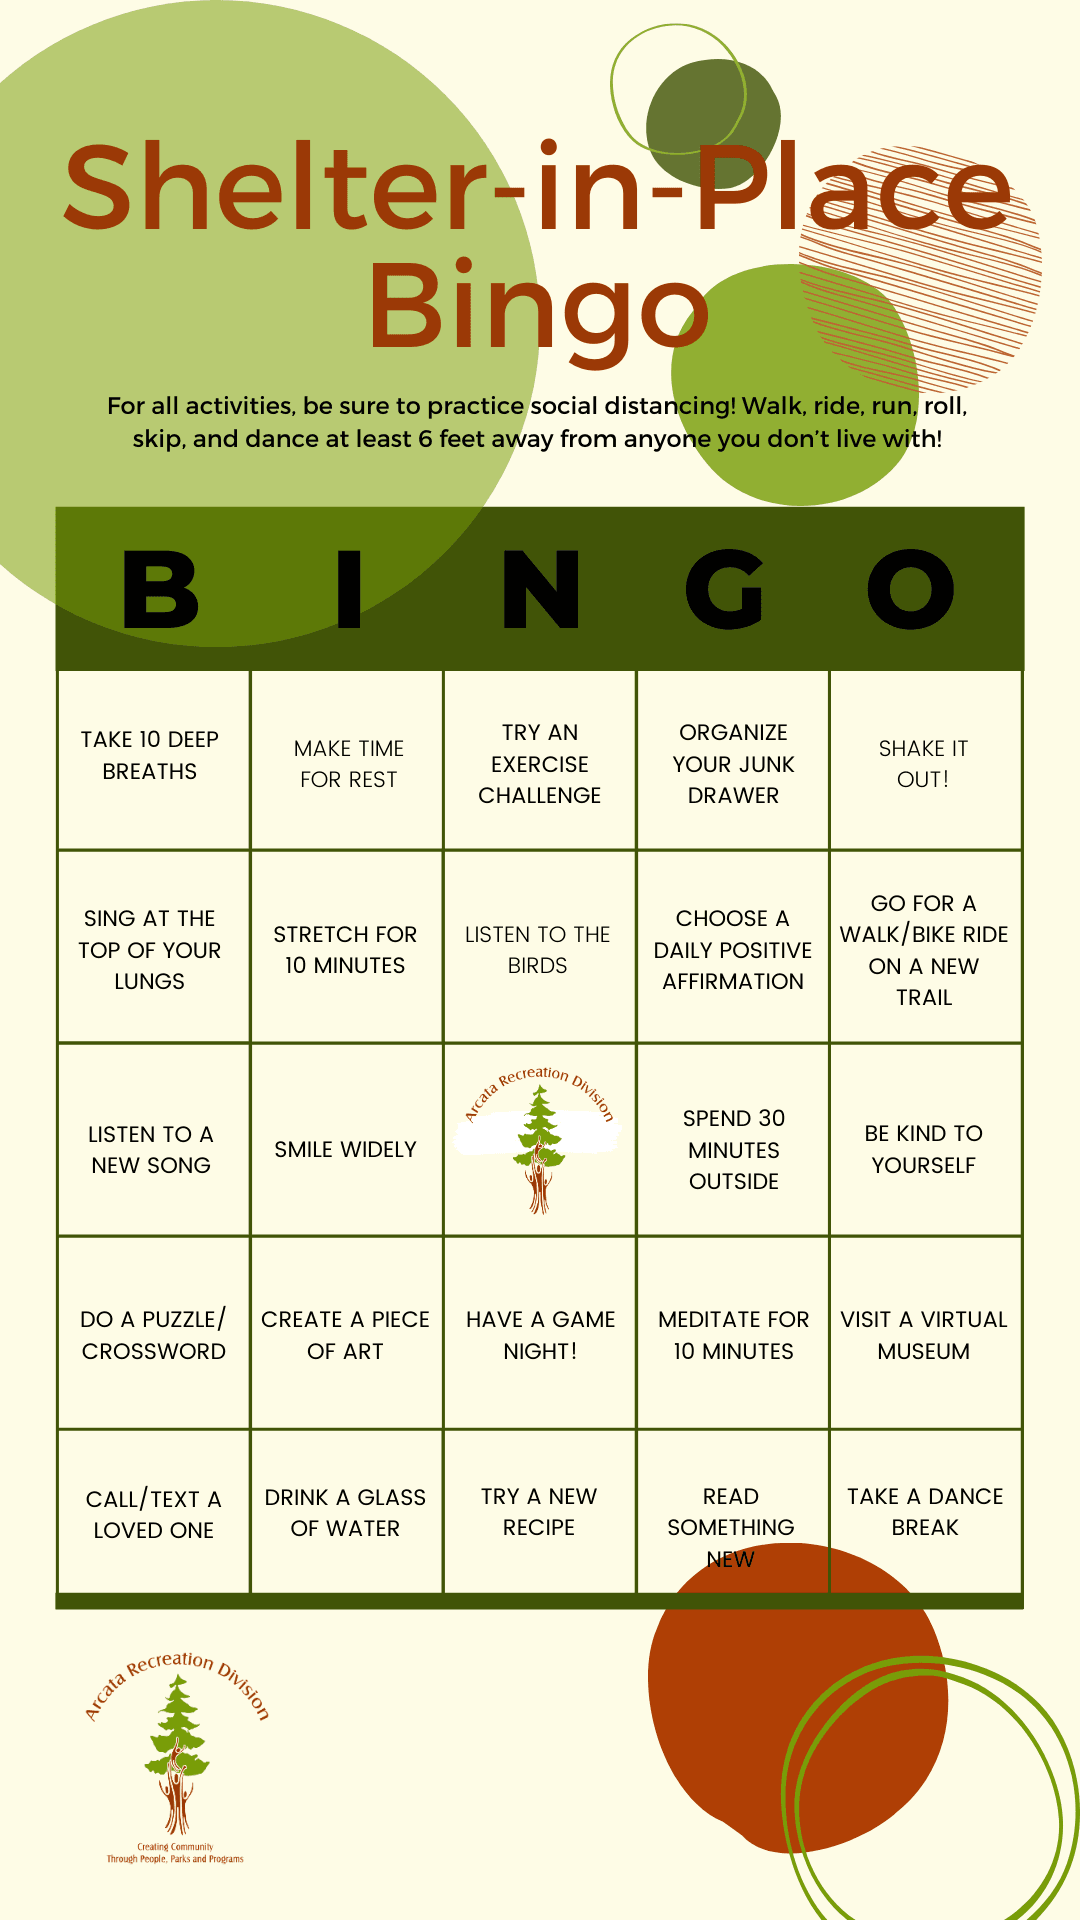 Shelter-in-Place Bingo